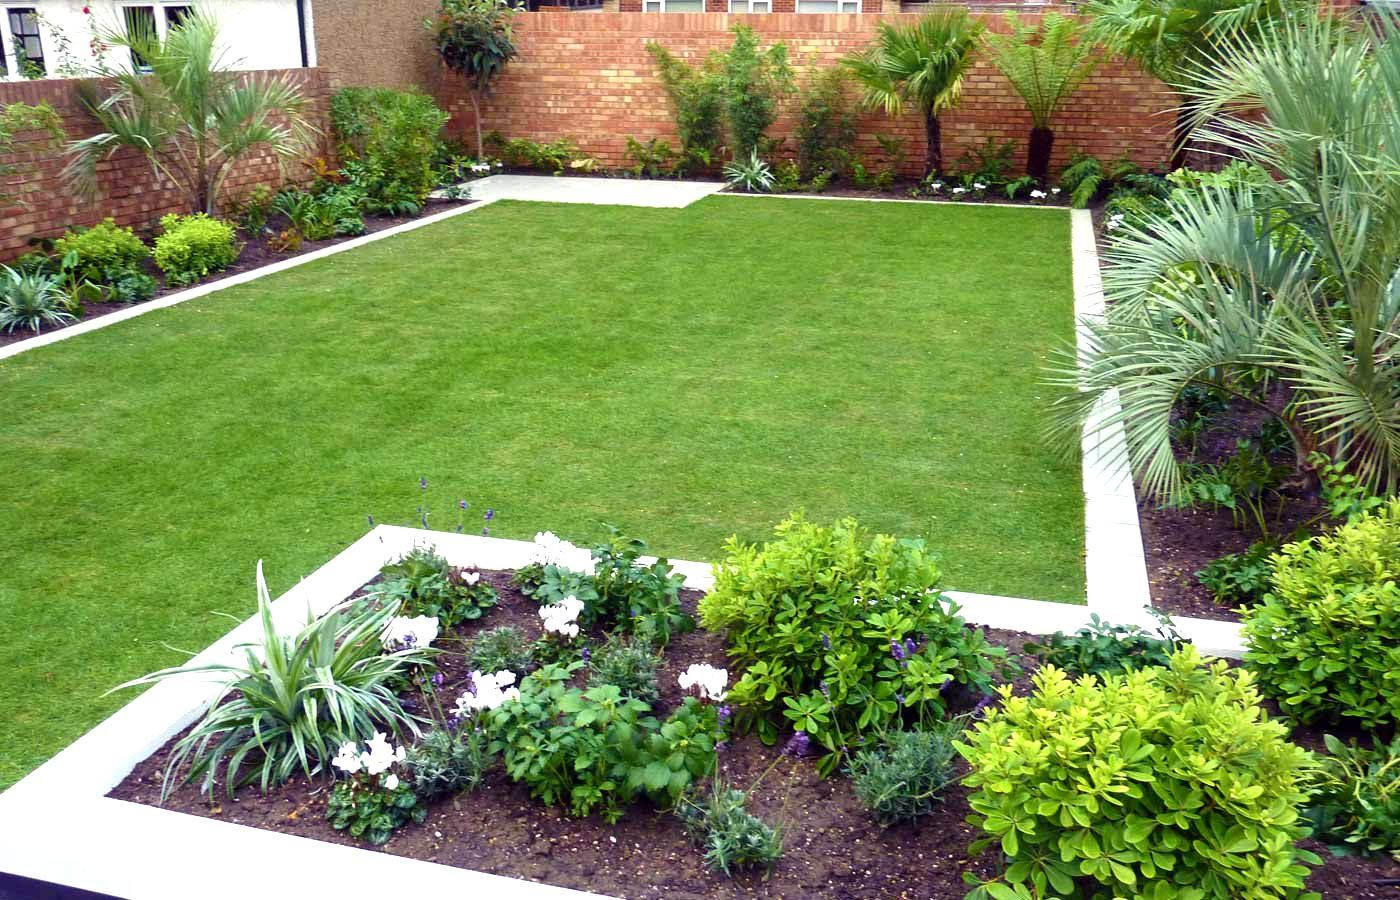 Simple garden designs no fret small garden design for Simple garden design